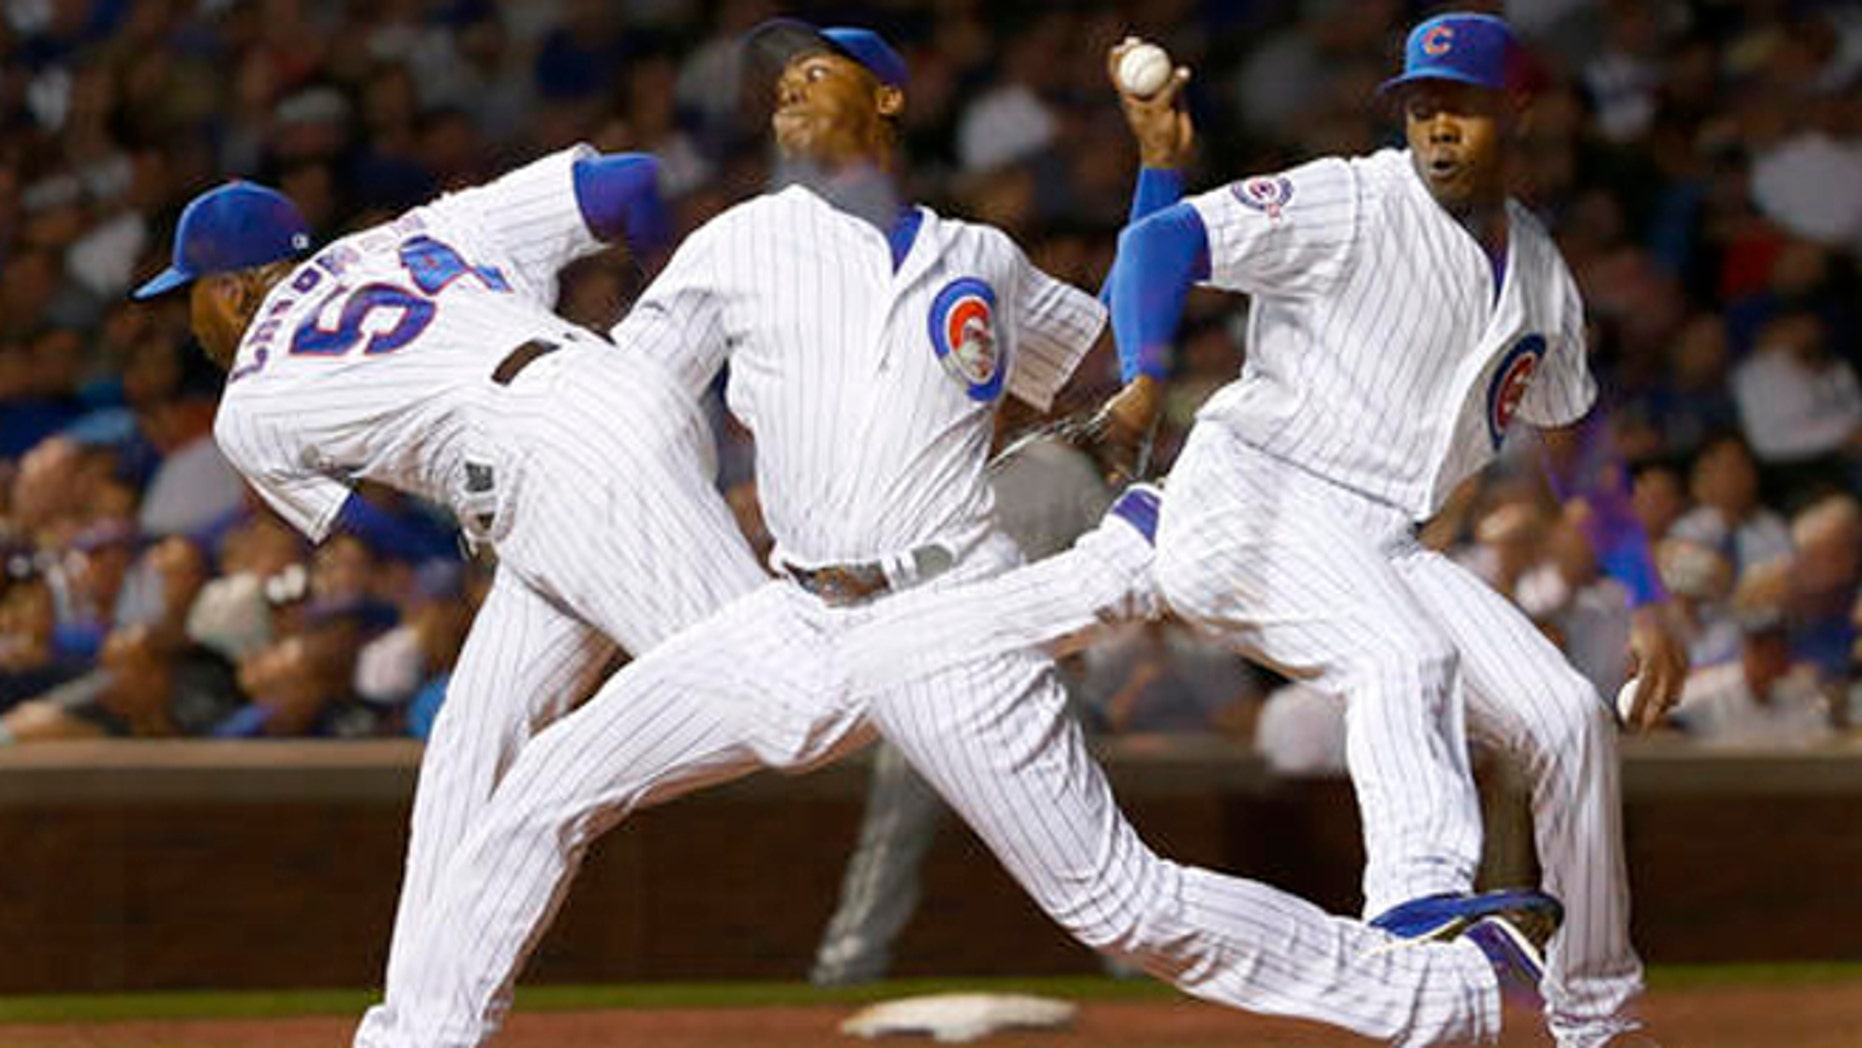 Chicago Cubs relief pitcher Aroldis Chapman on Thursday, July 28, 2016, in Chicago.